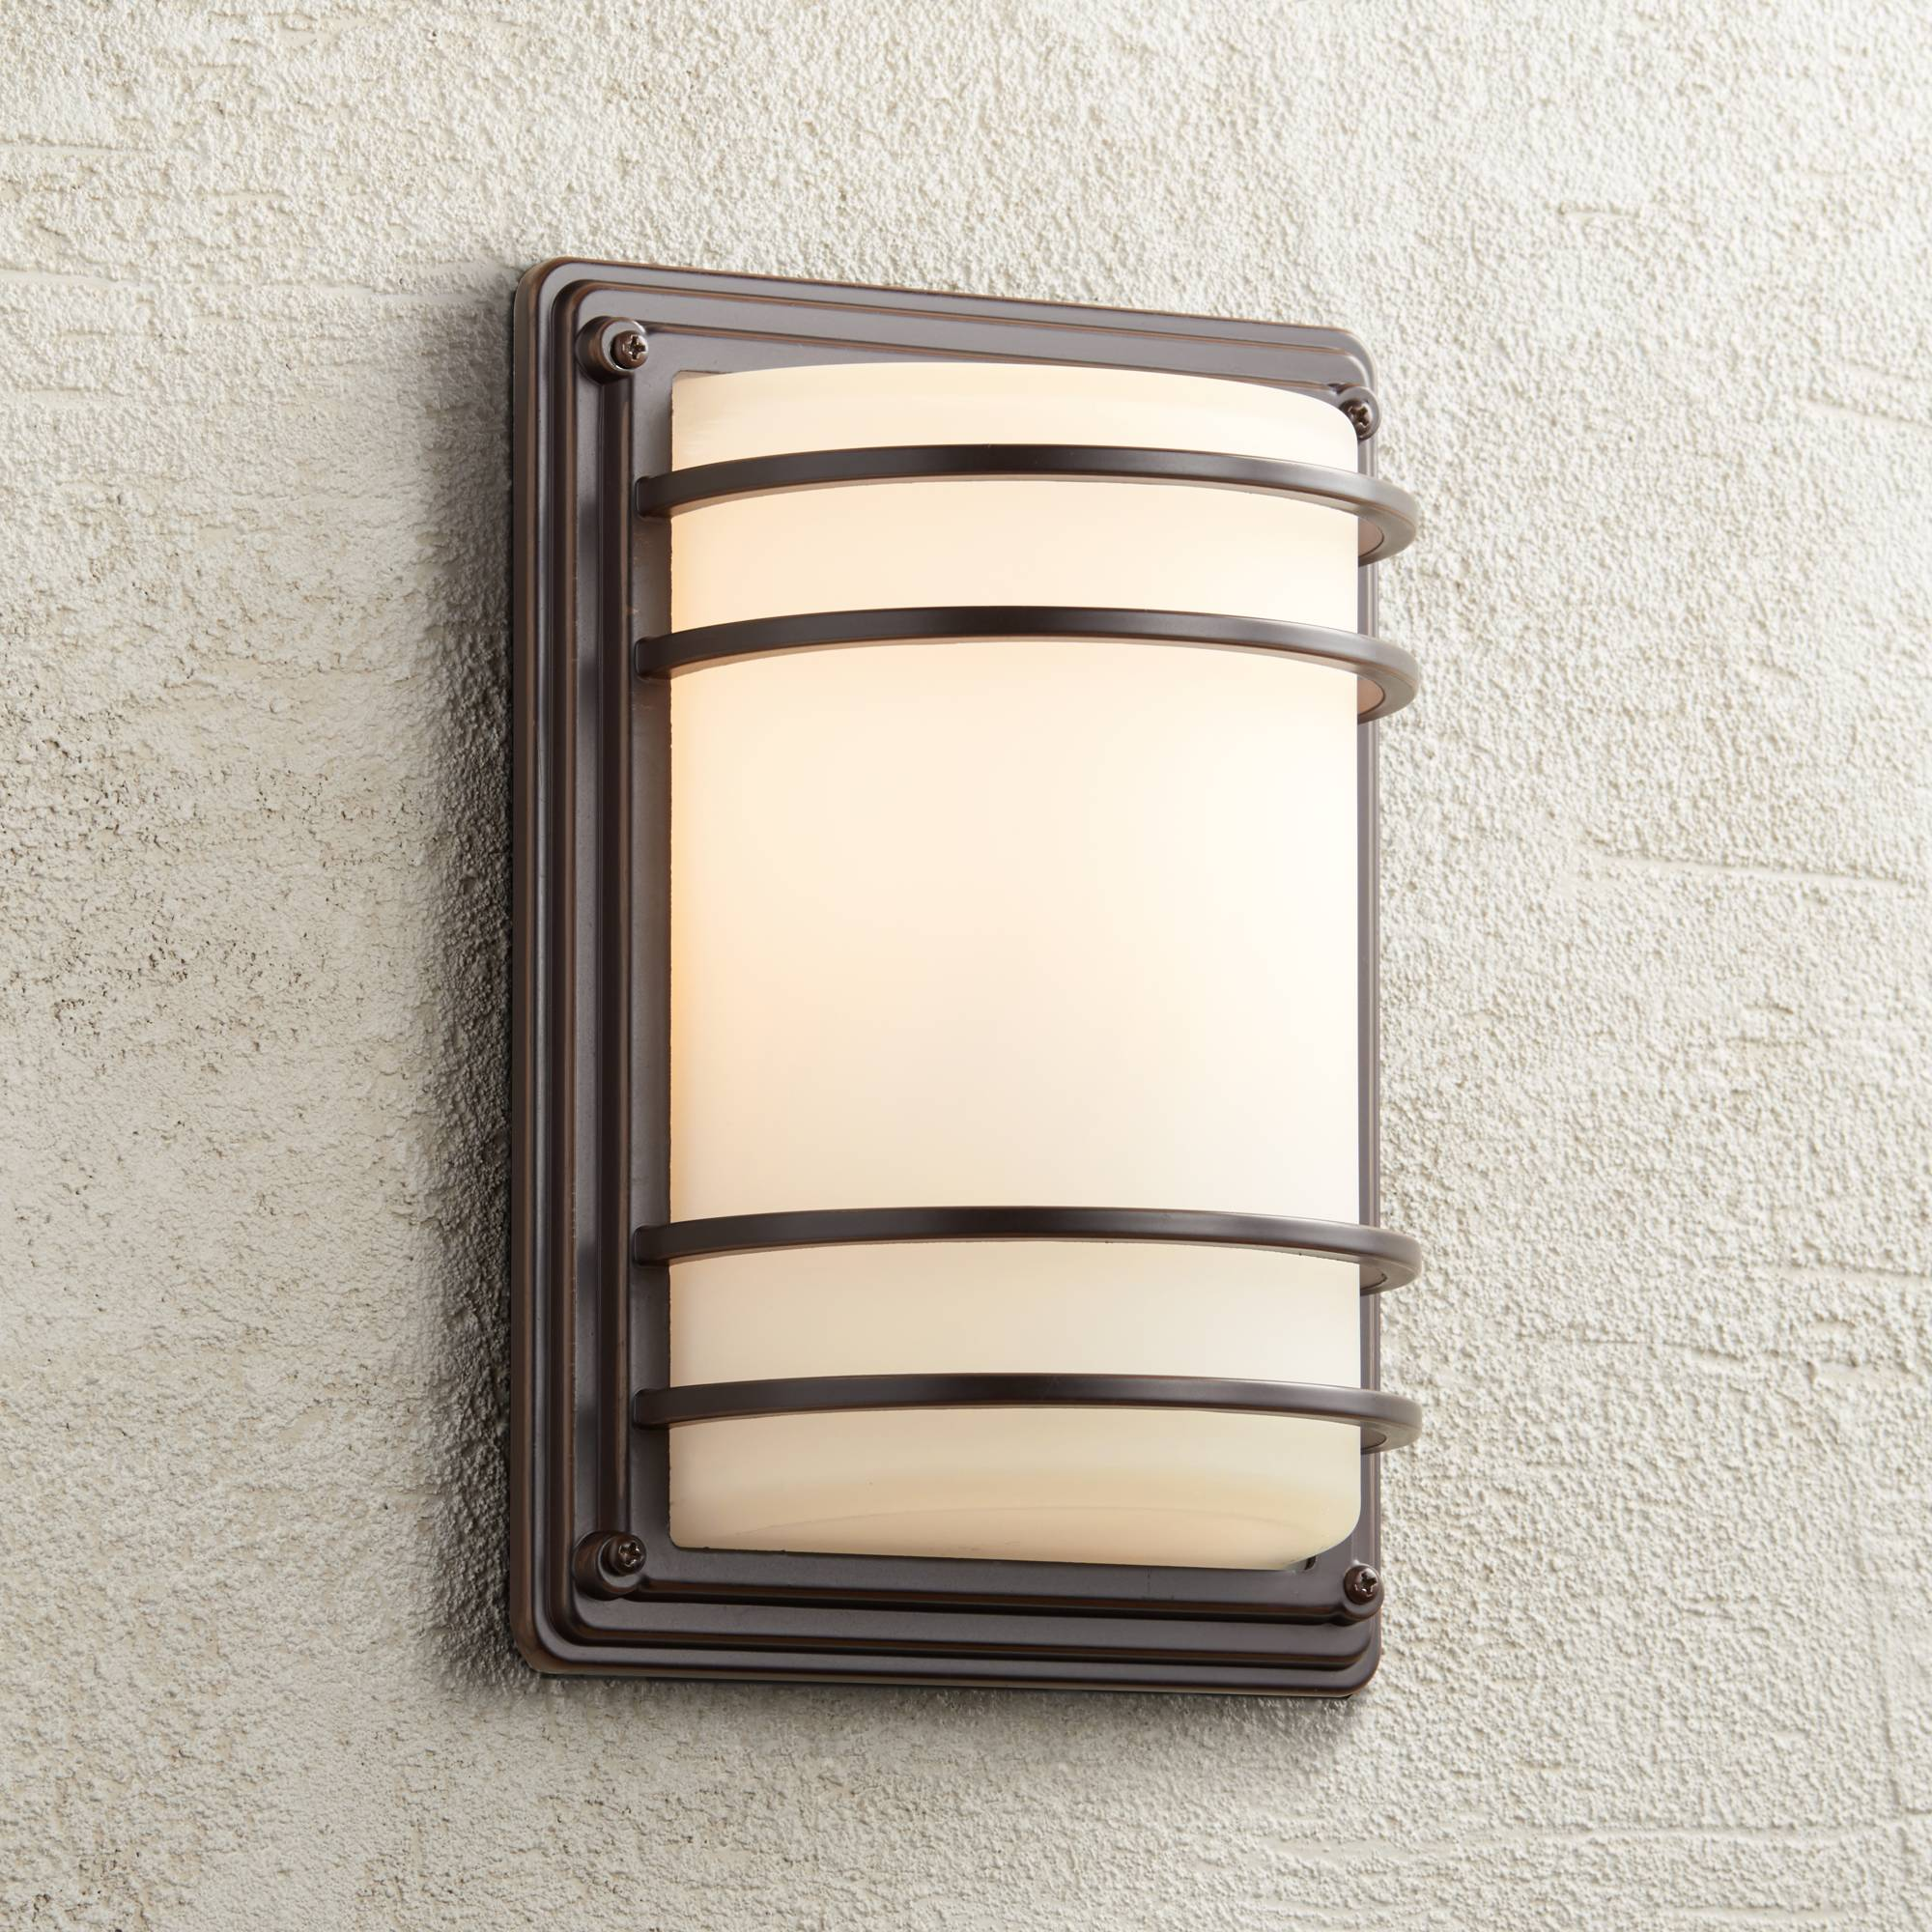 Details About Modern Outdoor Wall Light Fixture Rubbed Bronze 11 Sconce For Exterior House